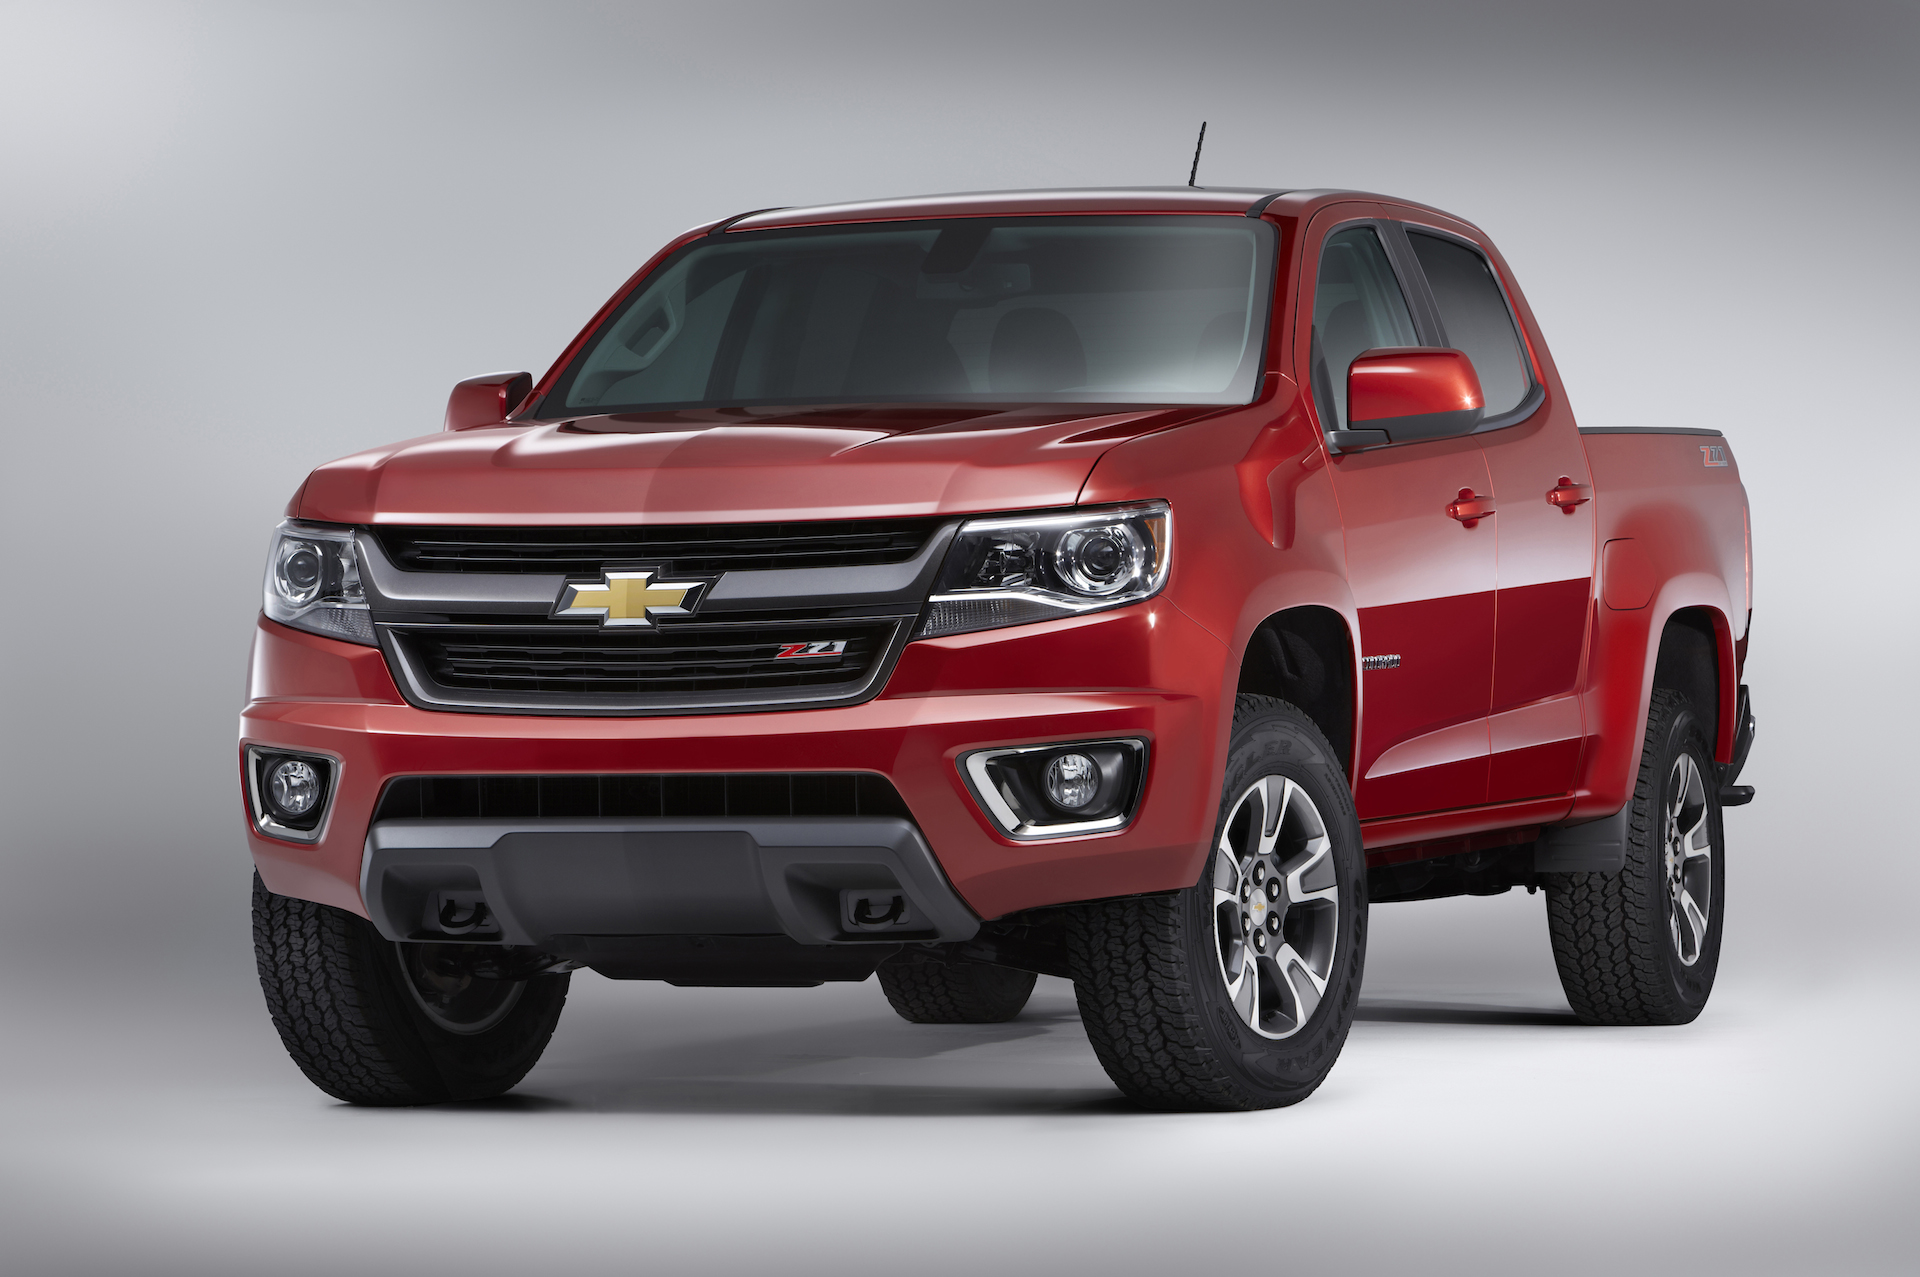 2015 chevy colorado gmc canyon mid size pickups almost here. Black Bedroom Furniture Sets. Home Design Ideas